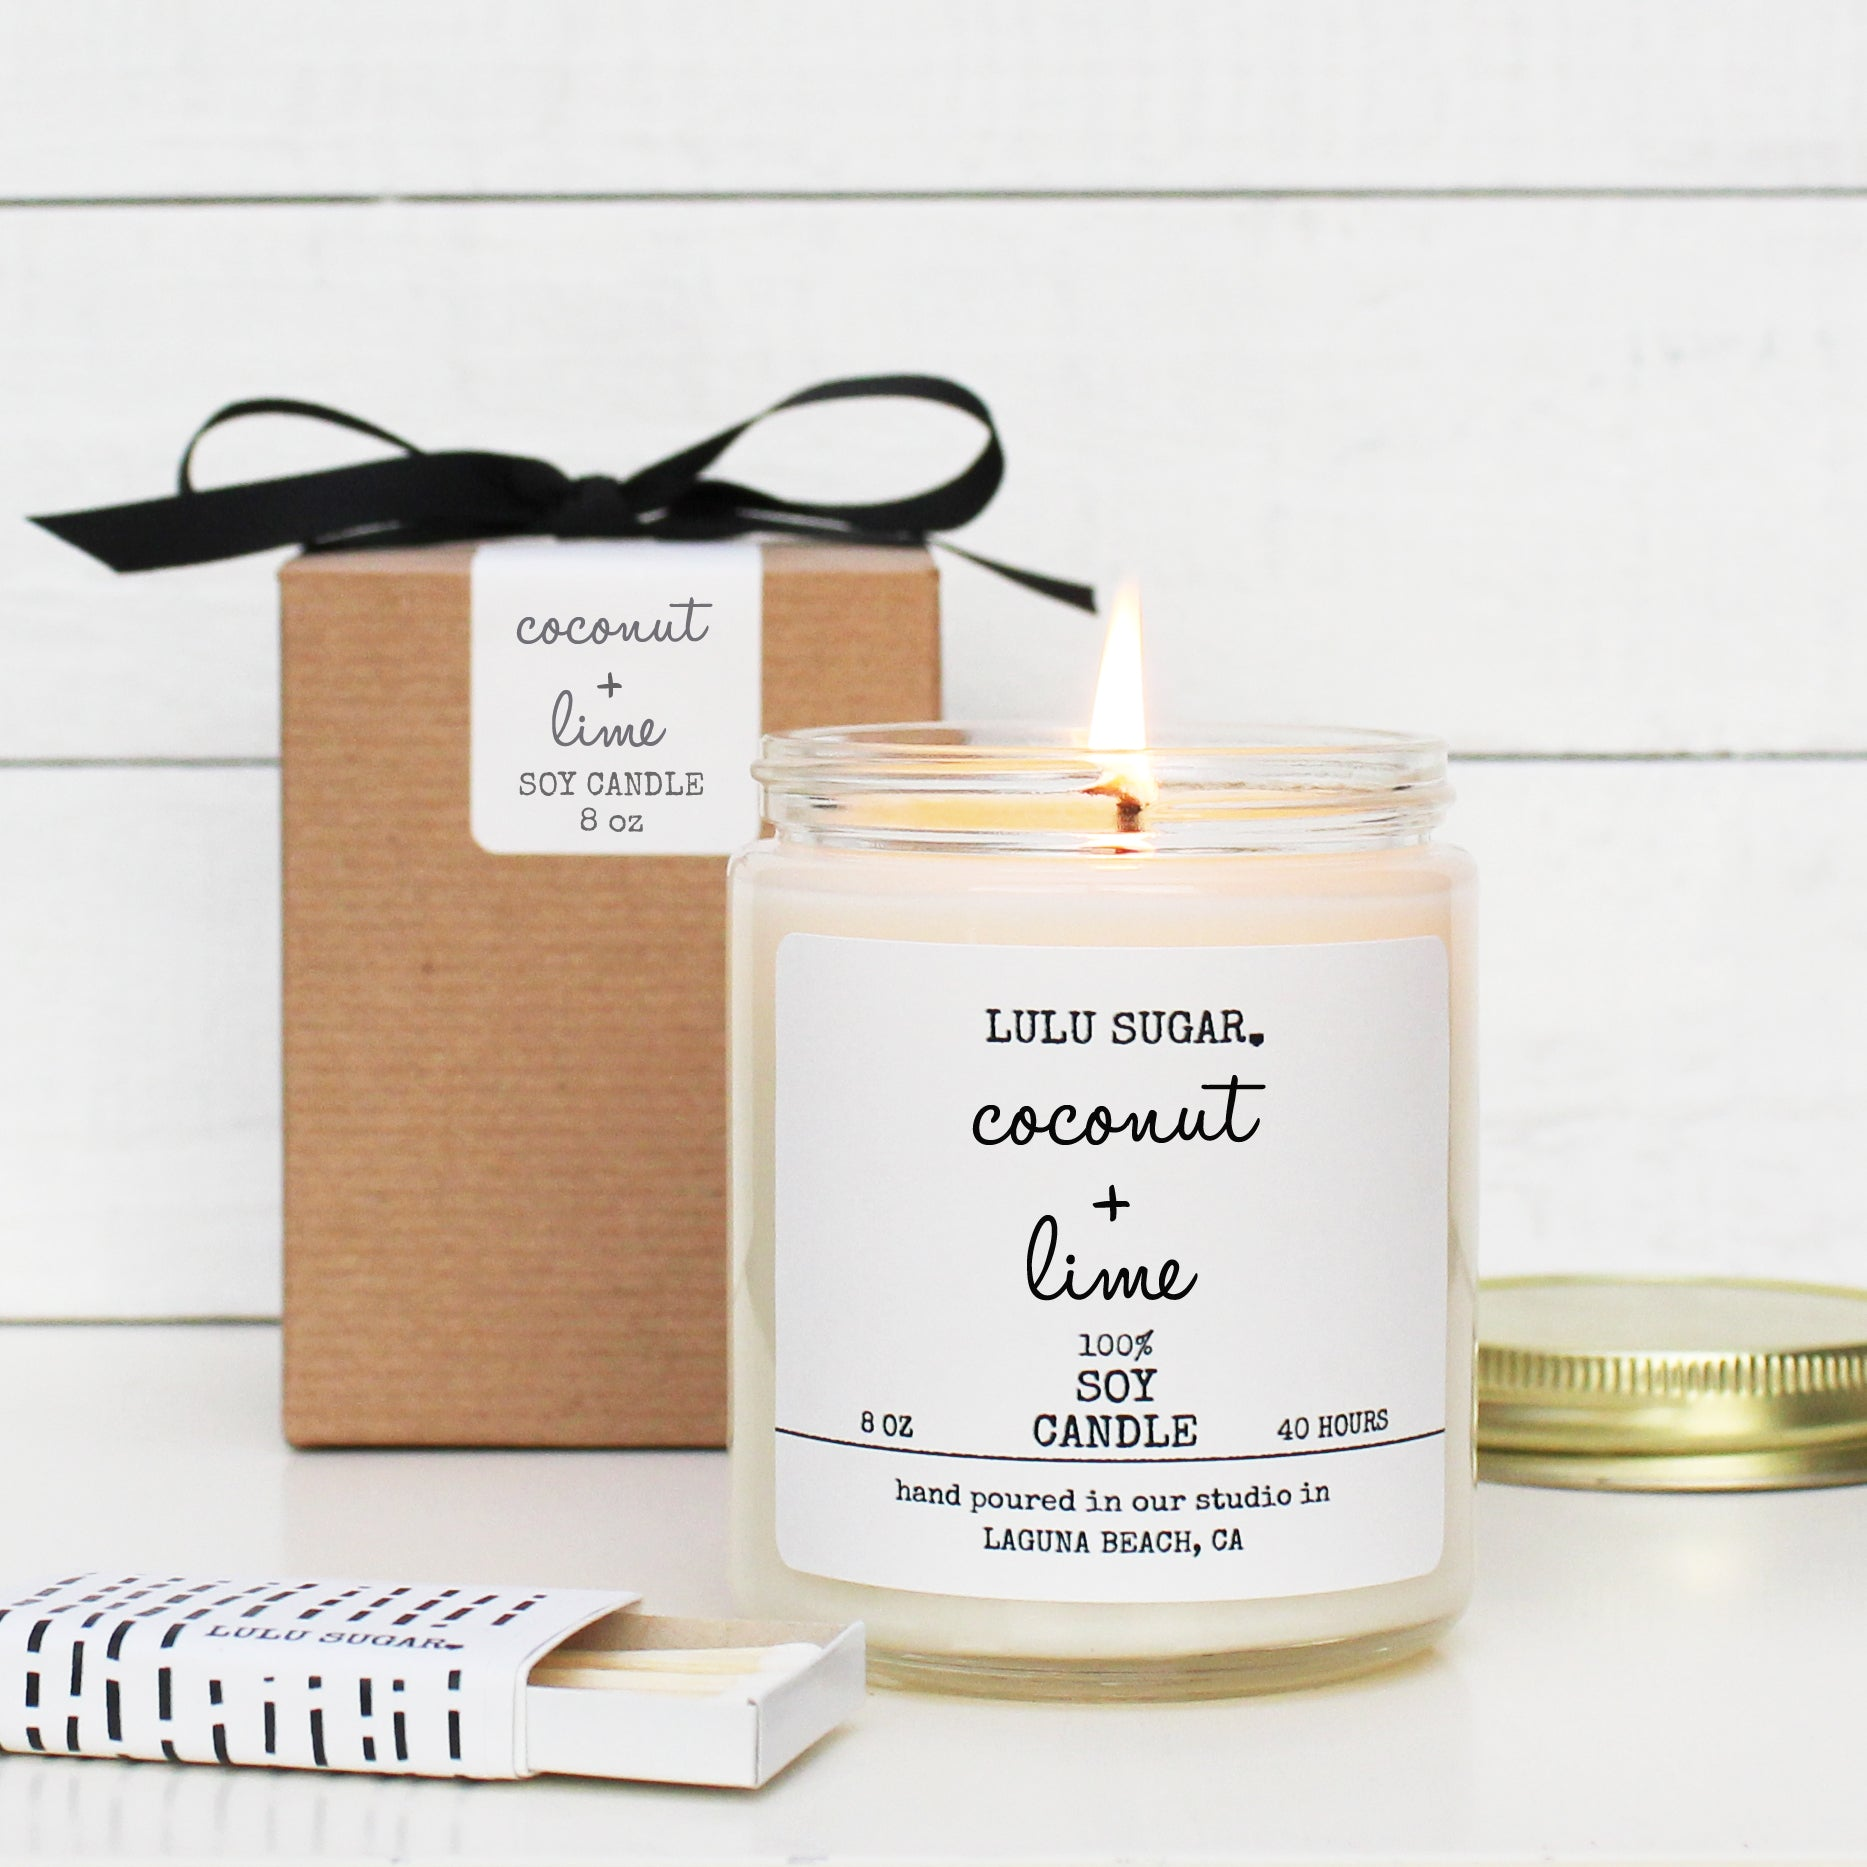 Coconut + Lime 8 oz Candle